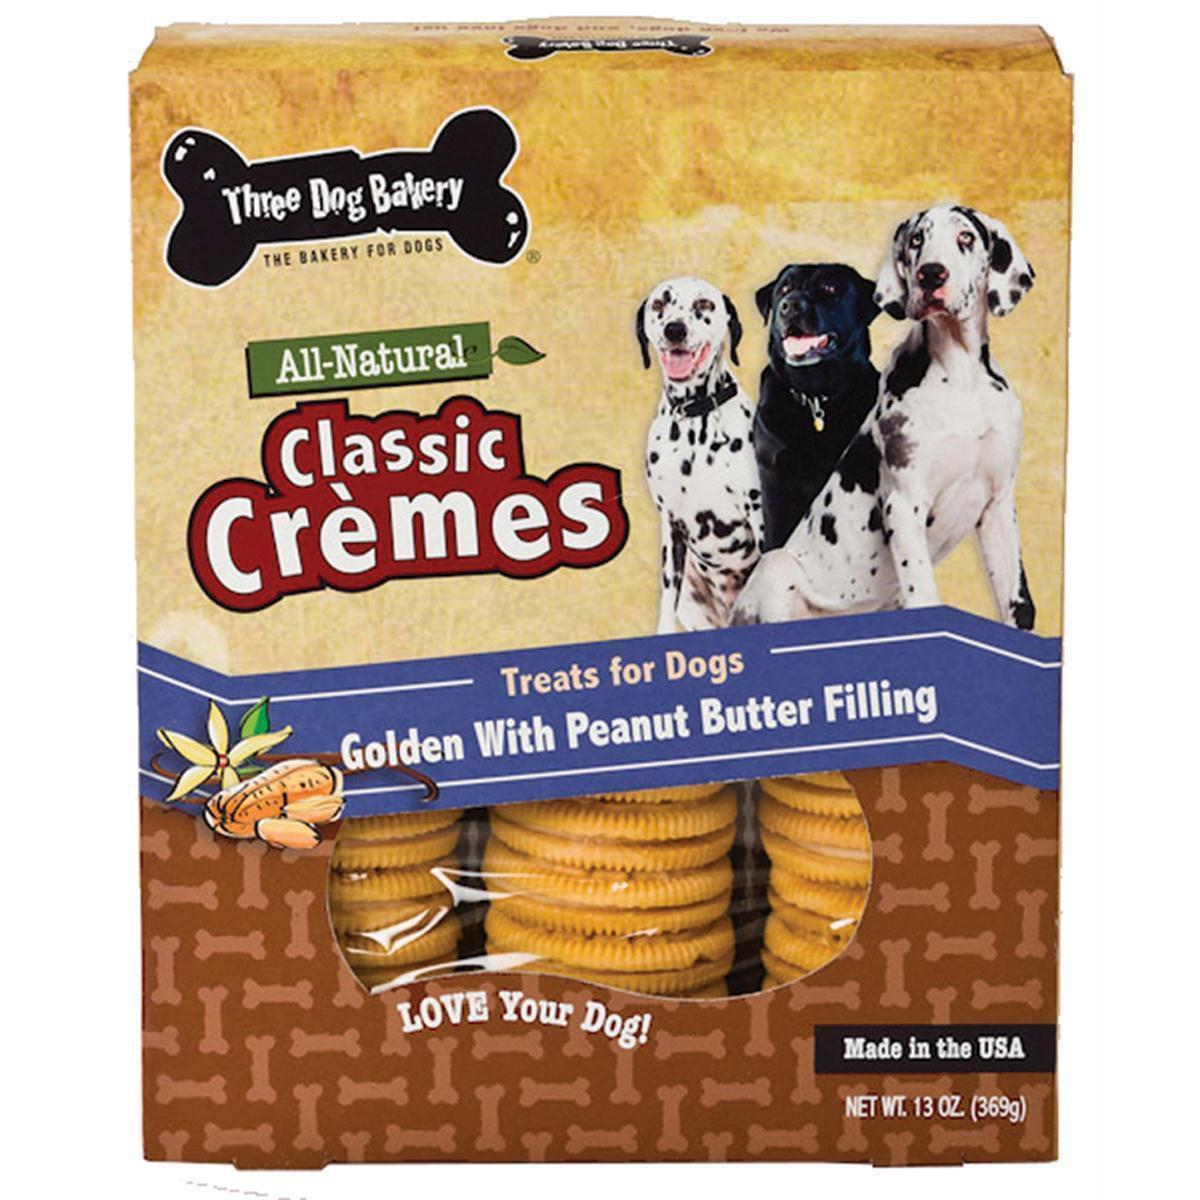 Classic Cremes All Natural Golden Cookies With Peanut Butter Filling Dog Treats 13Oz-Three Dog Bakery-DirtyFurClothing